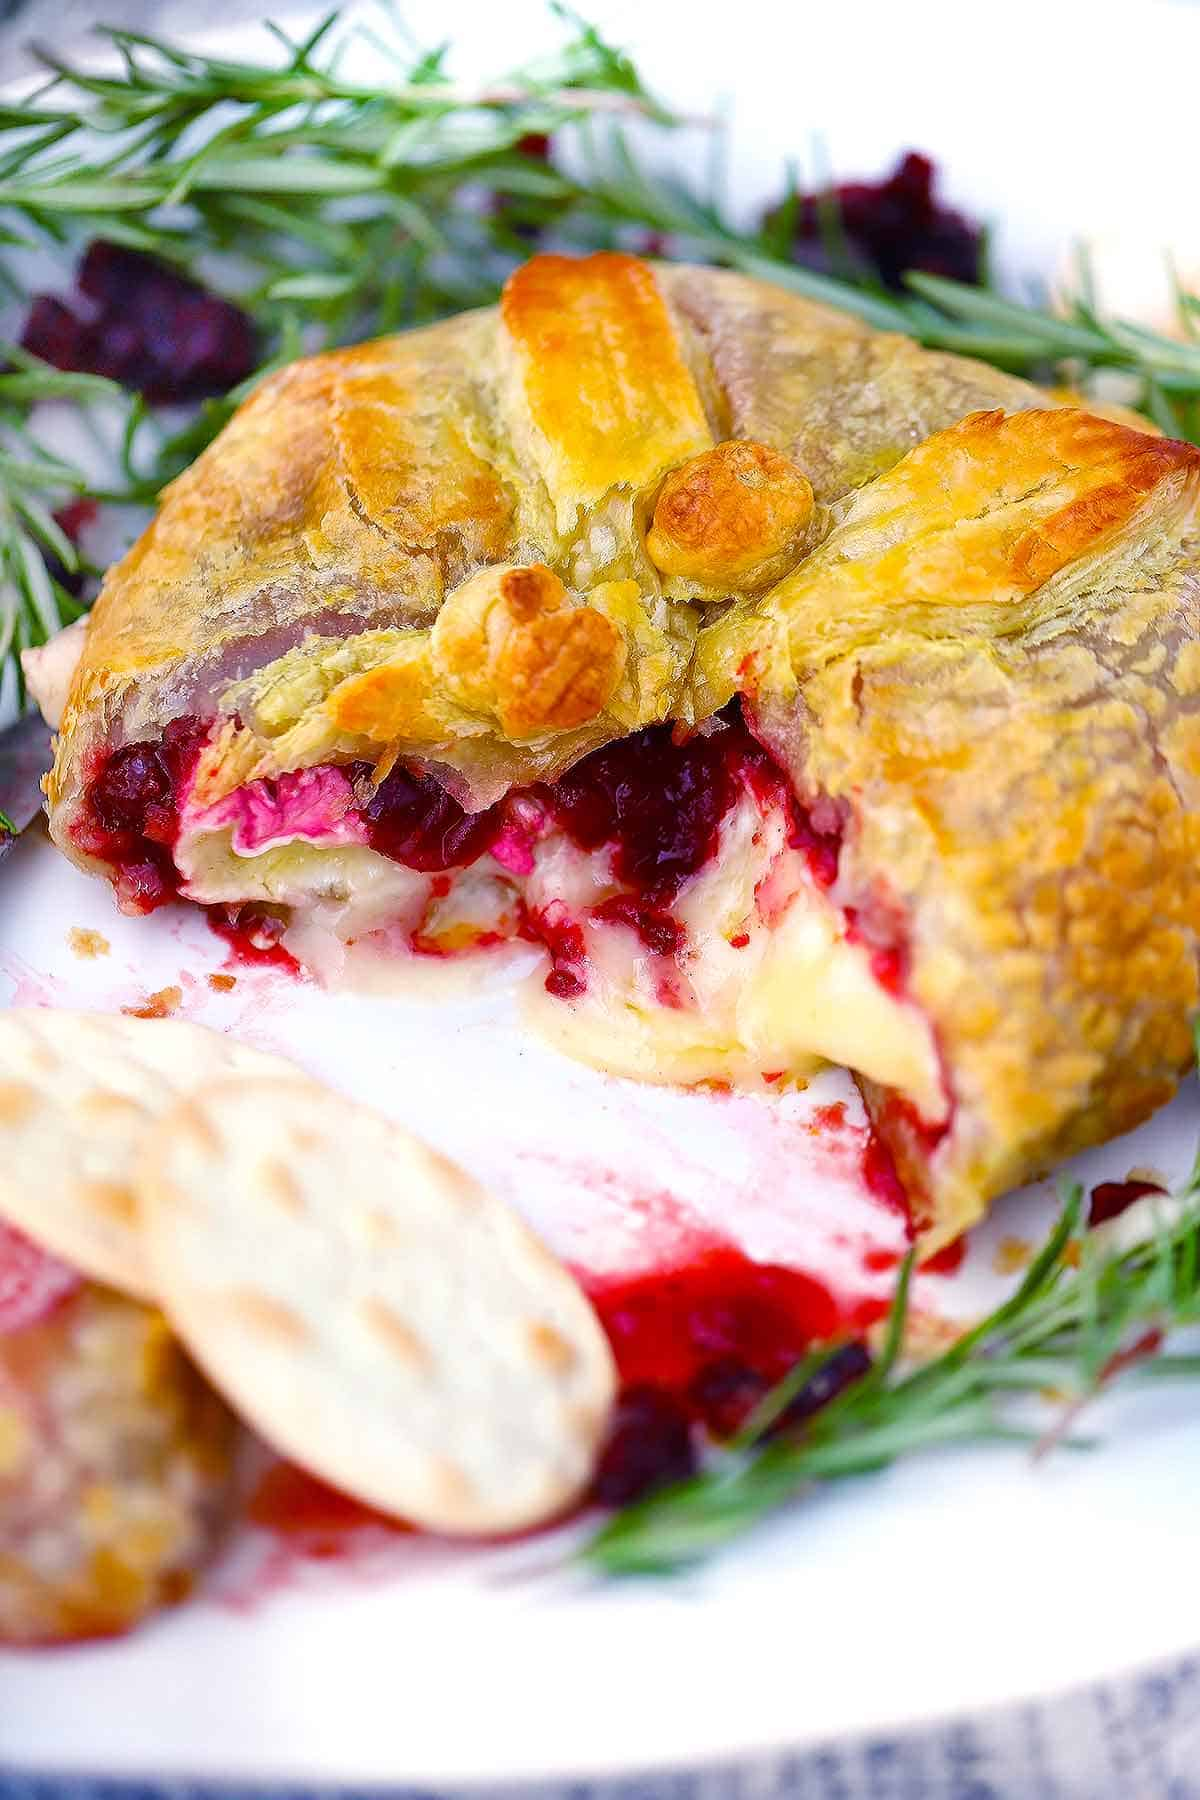 A baked brie en croute on a platter with water crackers, rosemary, and cranberry, sliced open with cheese melting out.